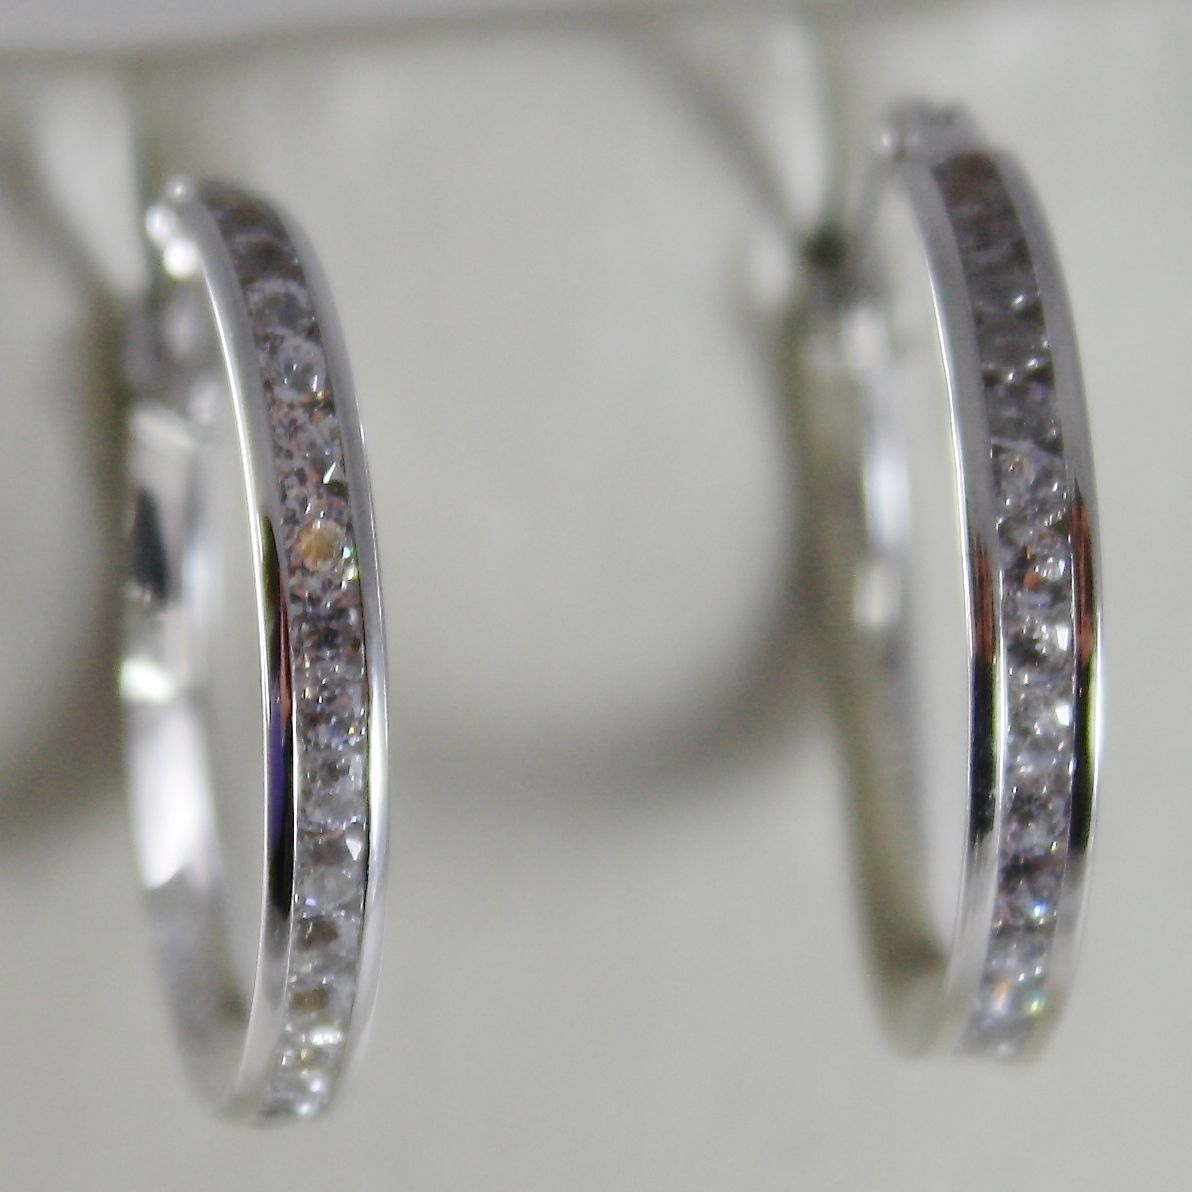 18K WHITE GOLD EARRINGS HOOP 20 MM DIAMETER WITH ZIRCONIA 1.48 CT MADE IN ITALY